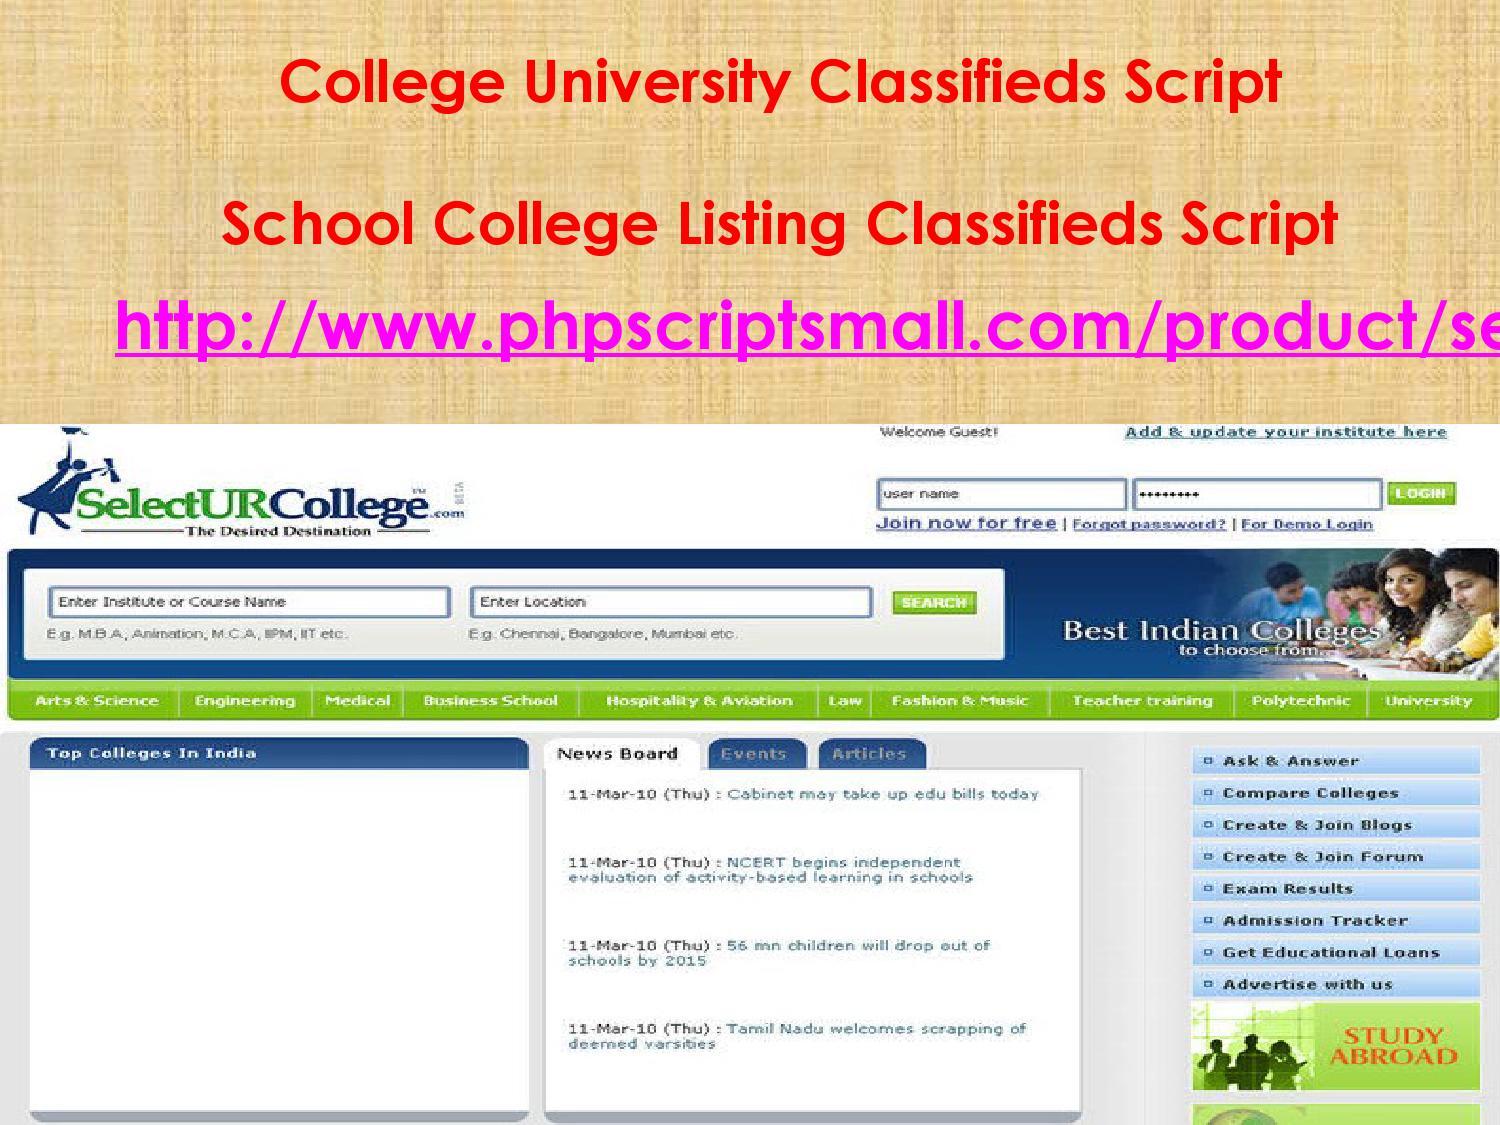 College University Classifieds Script by